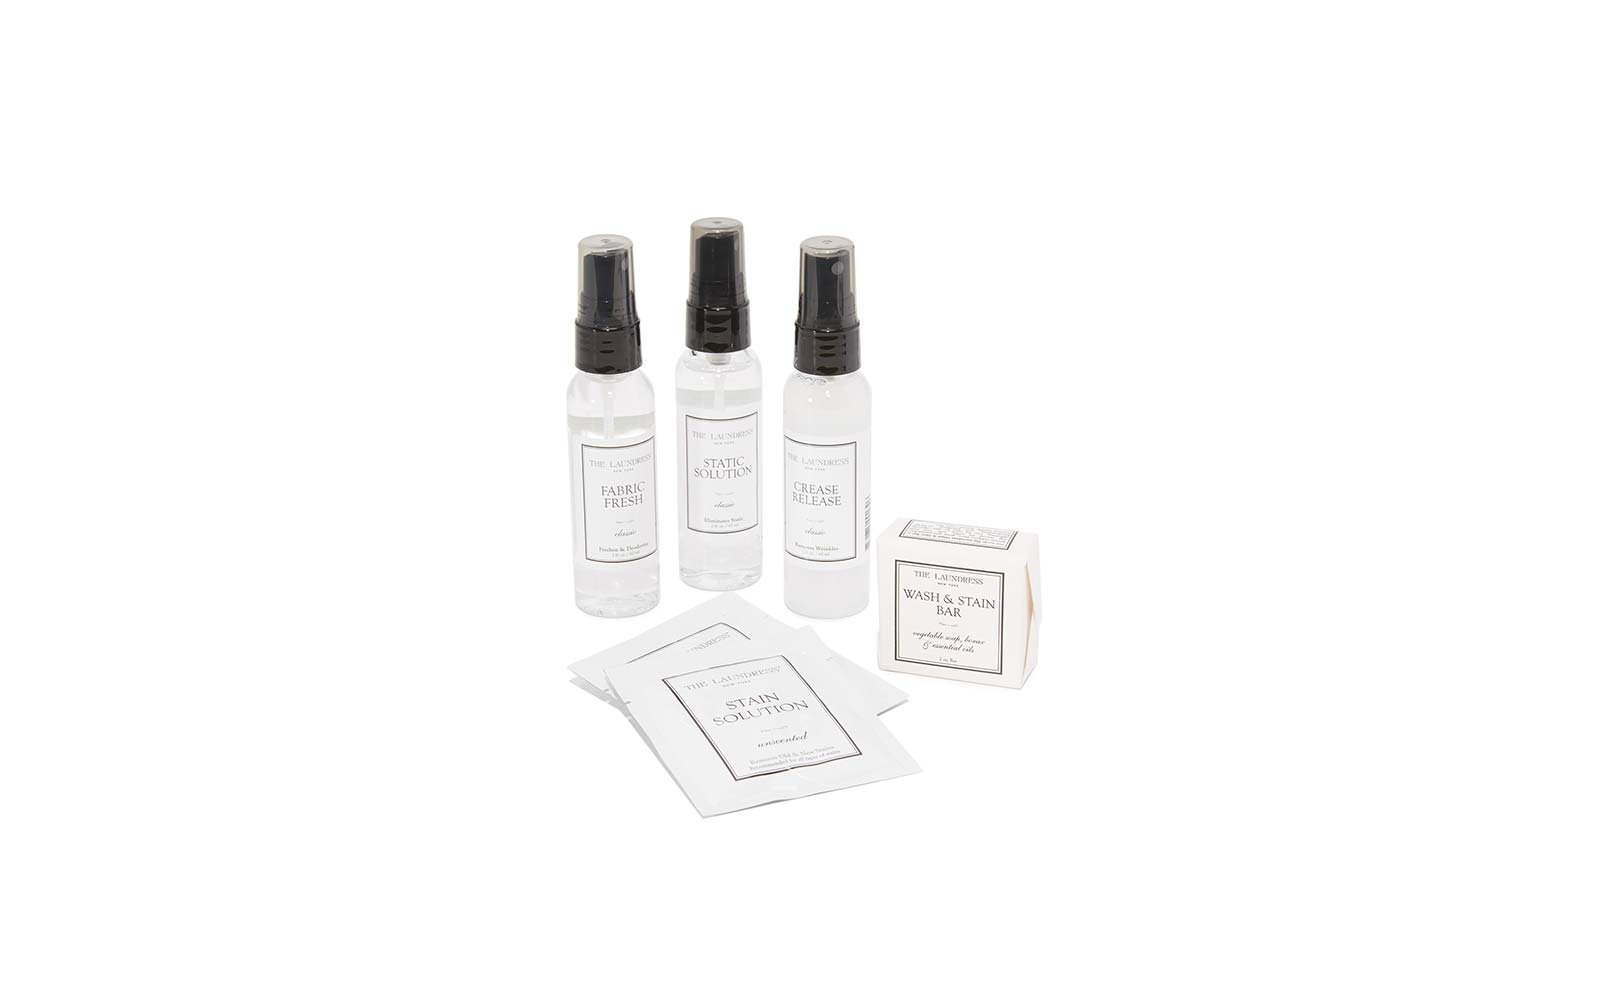 The Laundress on the spot kit